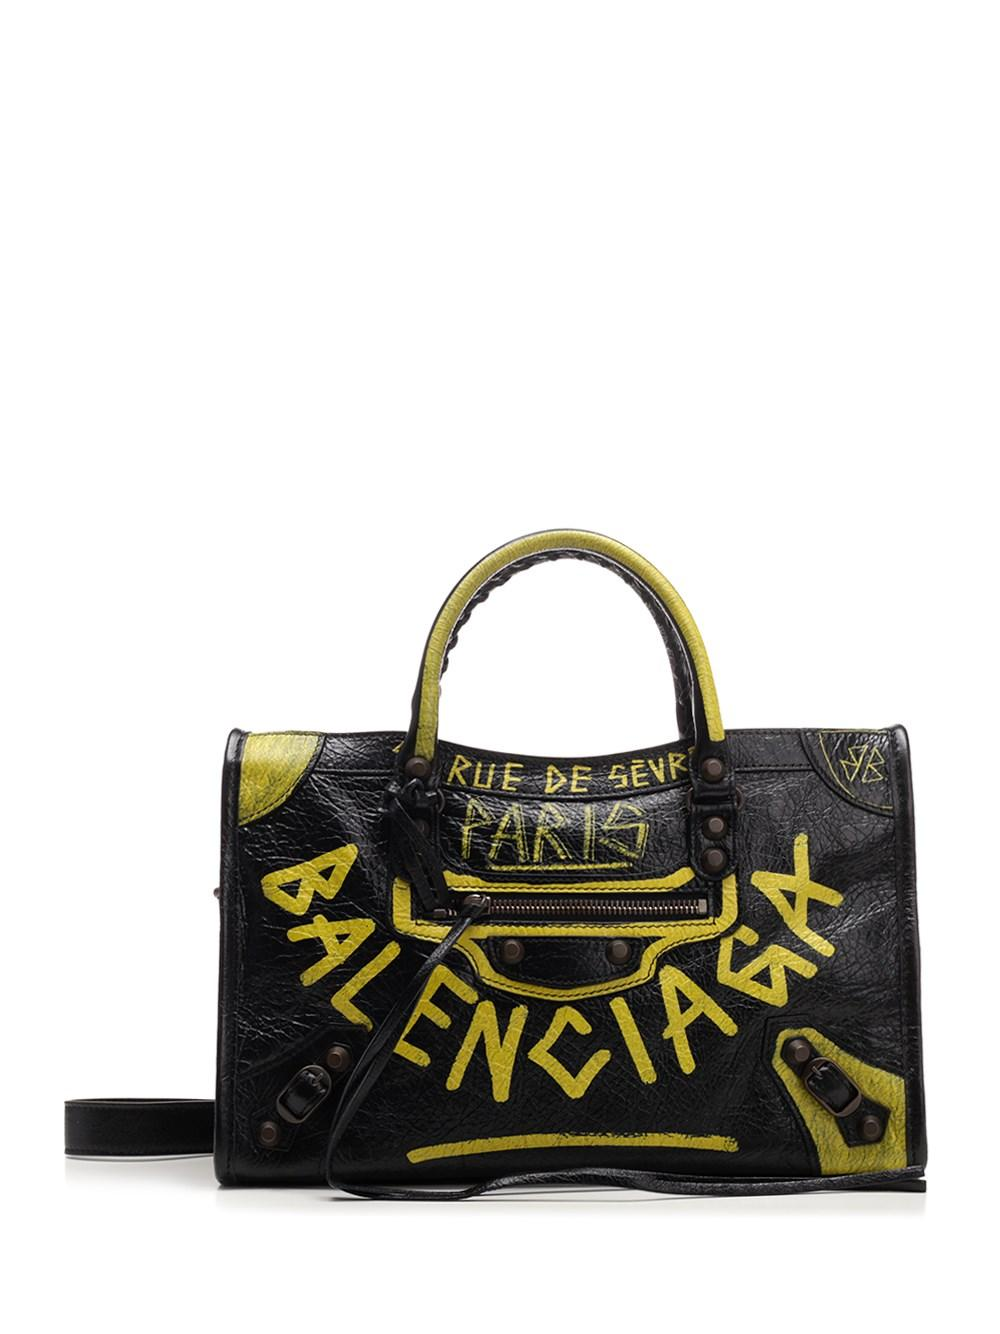 discount recognized brands outlet on sale Graffiti City S Tote Bag